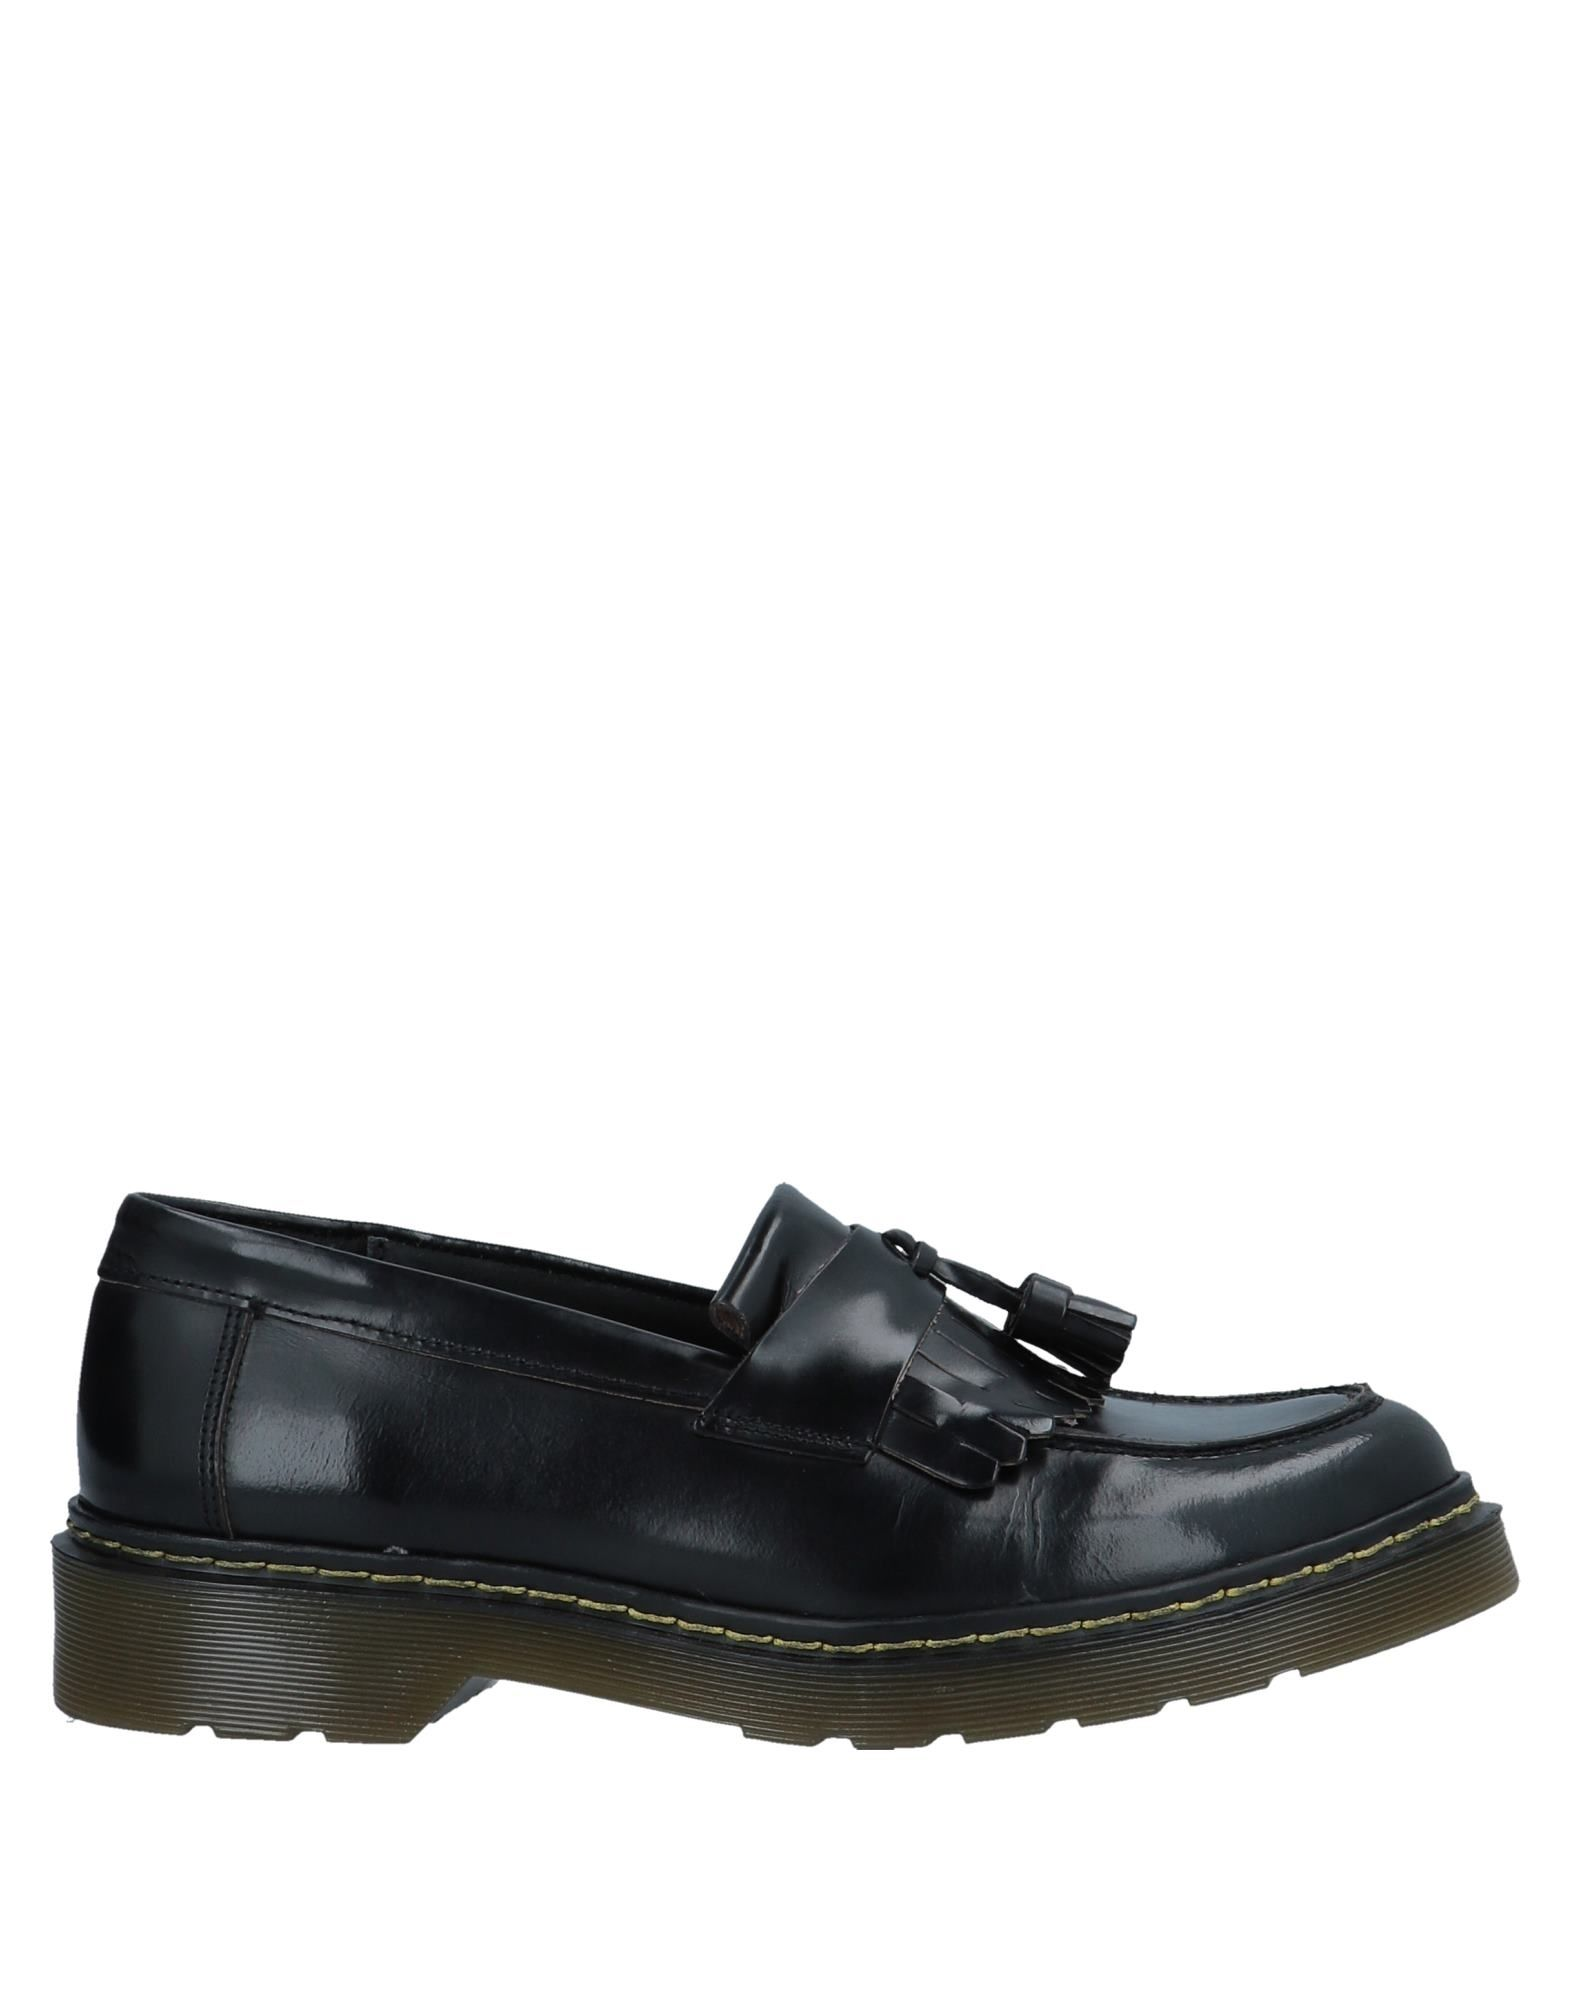 Termans Loafers - Canada Men Termans Loafers online on  Canada - - 11550905HD 25df86